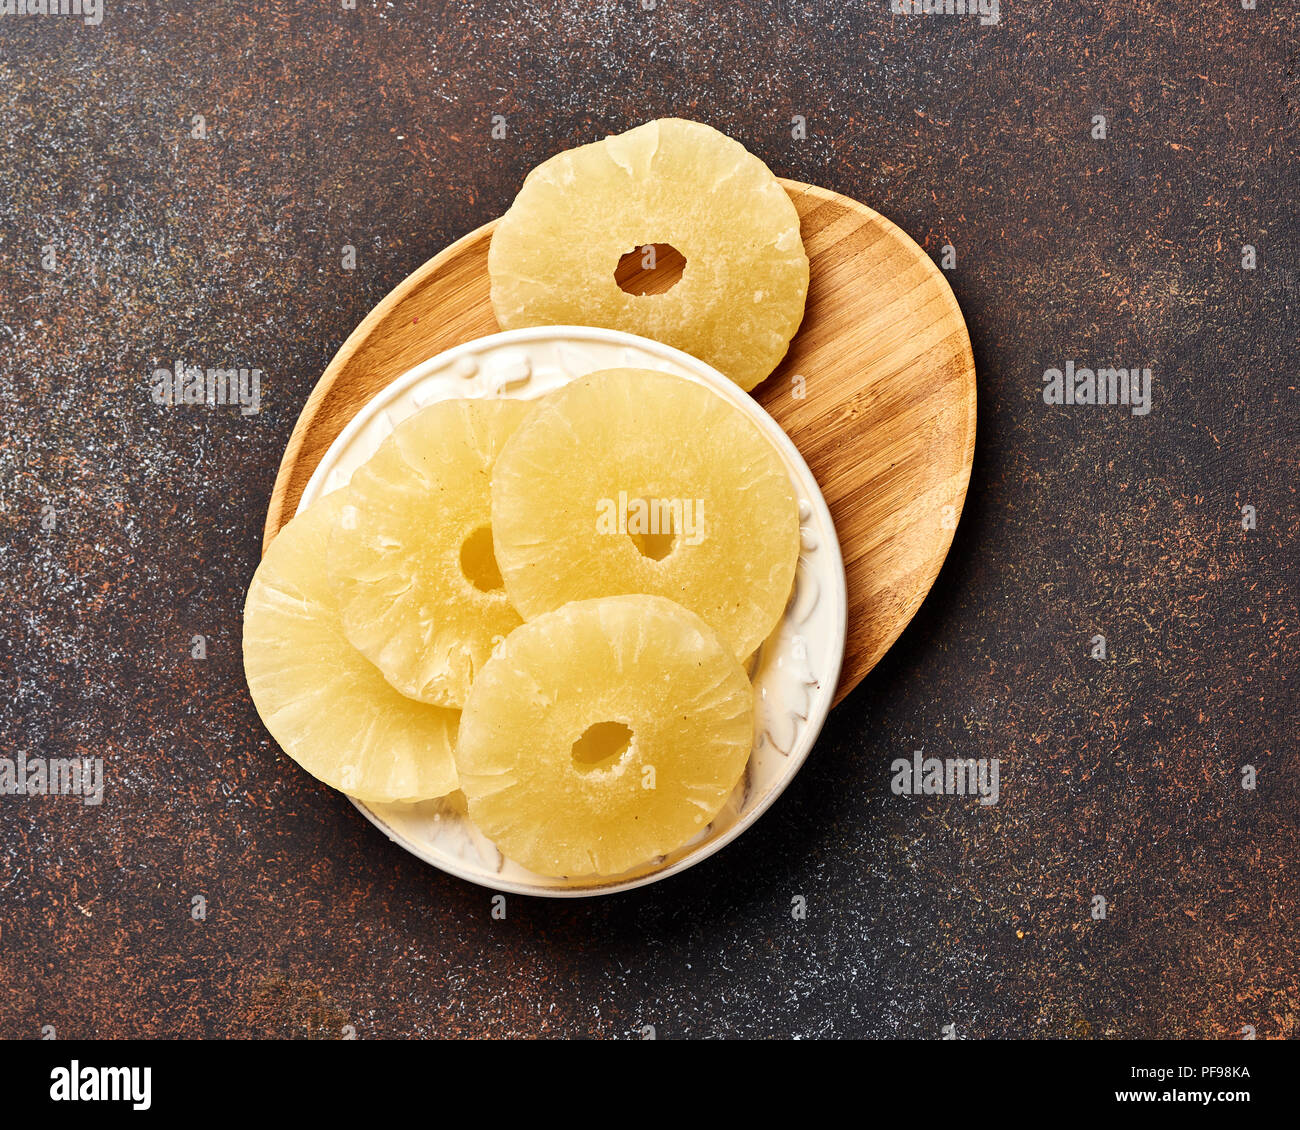 Dried pineapple rings on a brown table. Top viw of sweet paneapple slices. - Stock Image